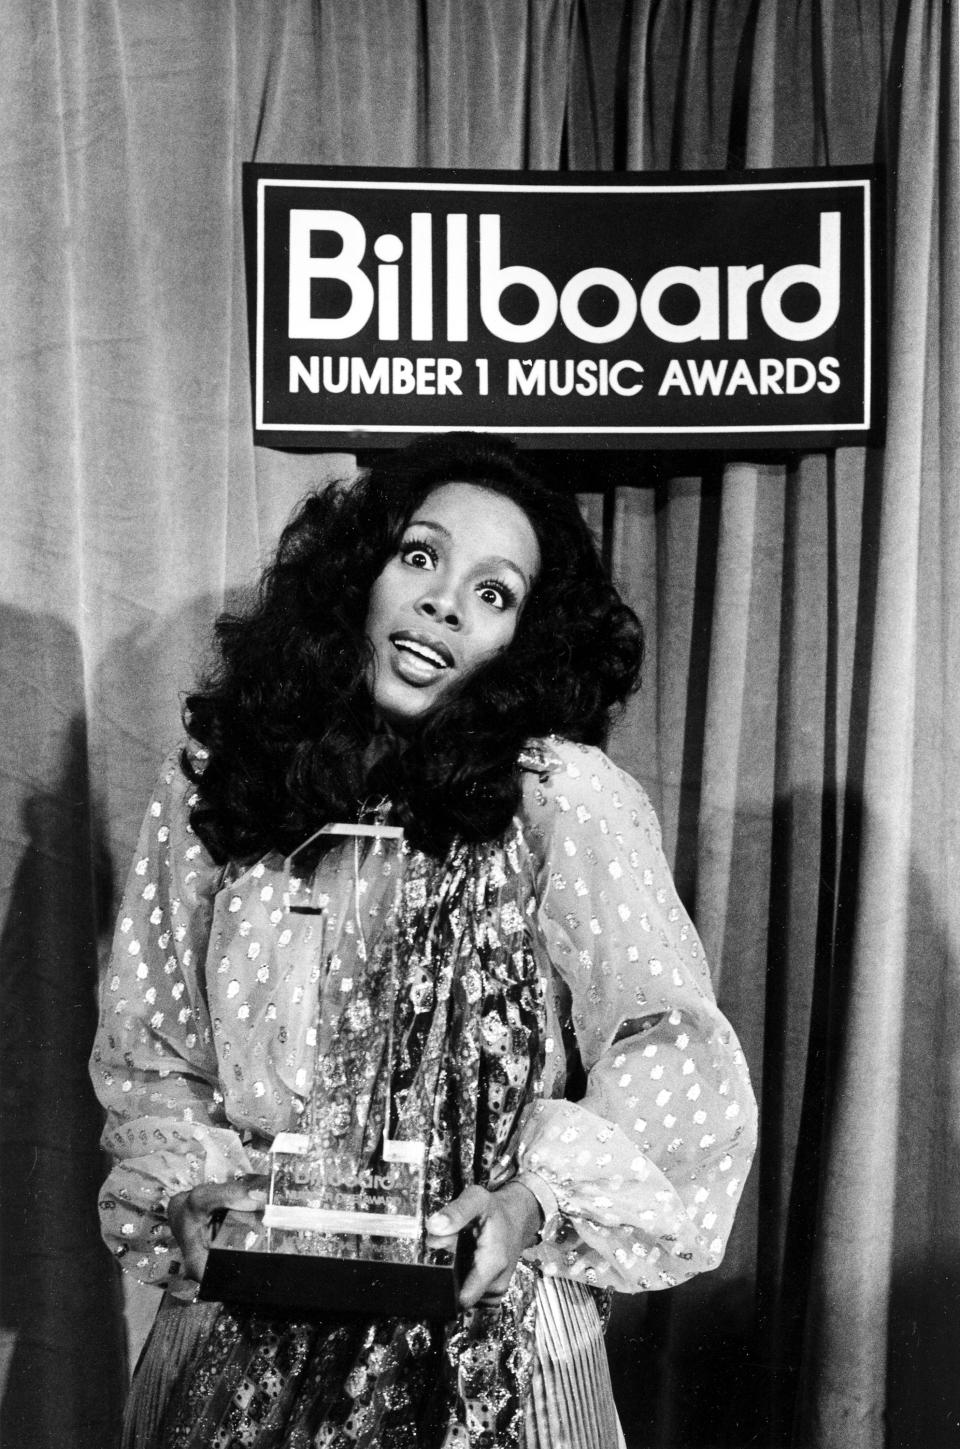 """FILE - In this Dec. 11, 1977 file photo,Donna Summer holds her award at the Billboard Number 1 Music Awards in Santa Monica, Calif. Summer, the Queen of Disco who ruled the dance floors with anthems like """"Last Dance,"""" """"Love to Love You Baby"""" and """"Bad Girl,"""" has died. Her family released a statement, saying Summer died Thursday, May 17, 2012. She was 63. (AP Photo/File)"""